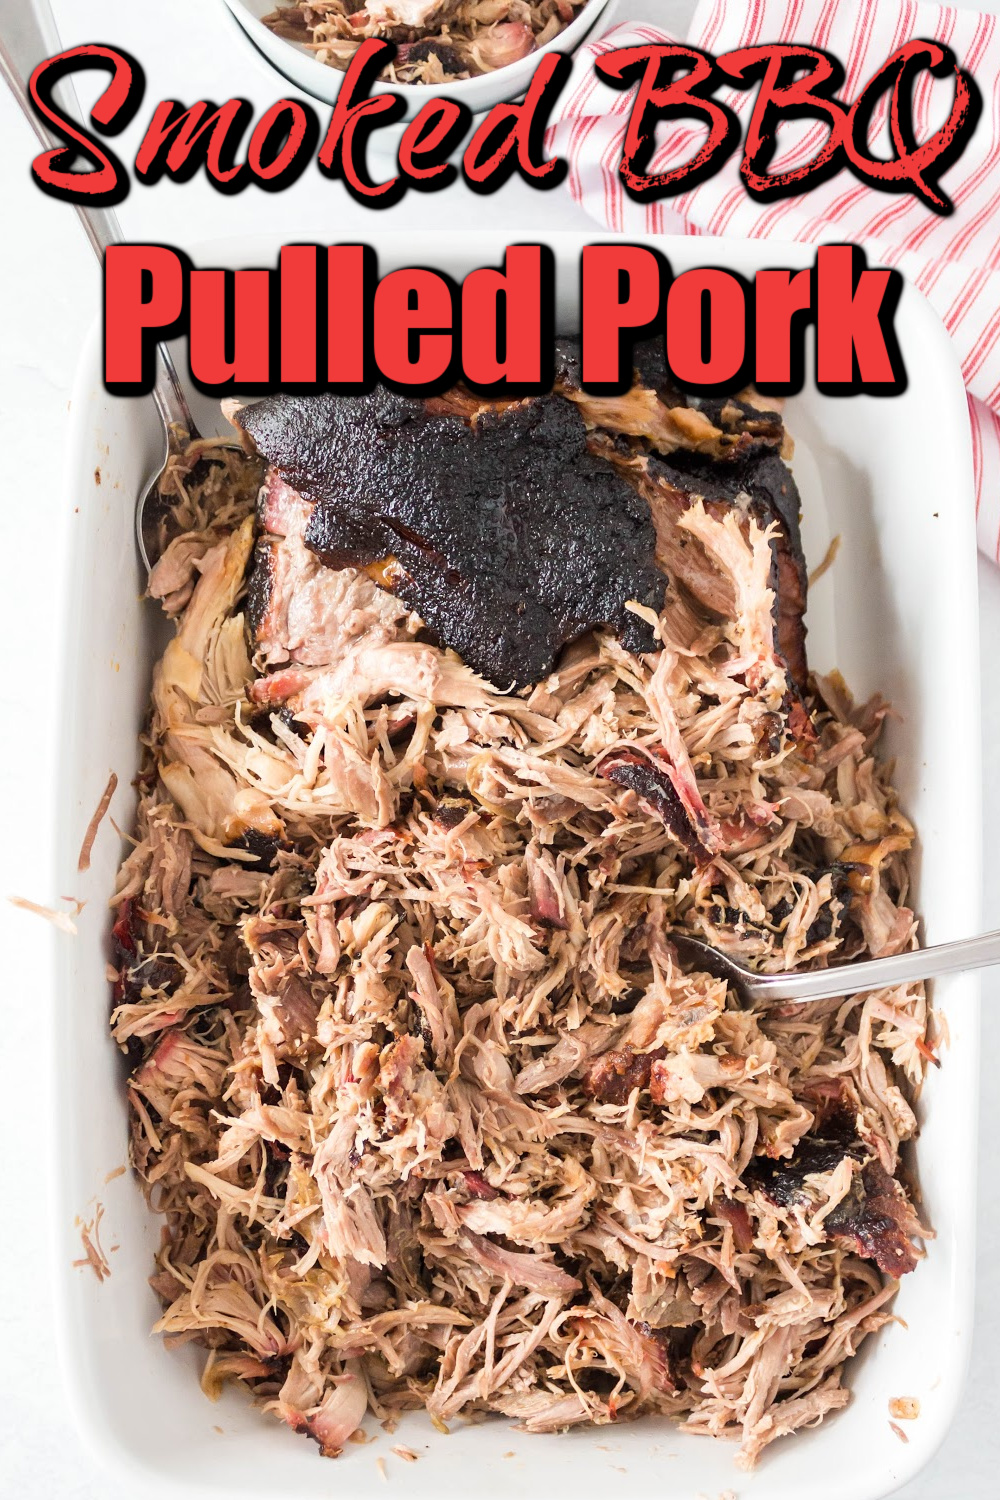 This pulled pork recipe is a delightful treat for everyone and is certainly one that you are going to love!